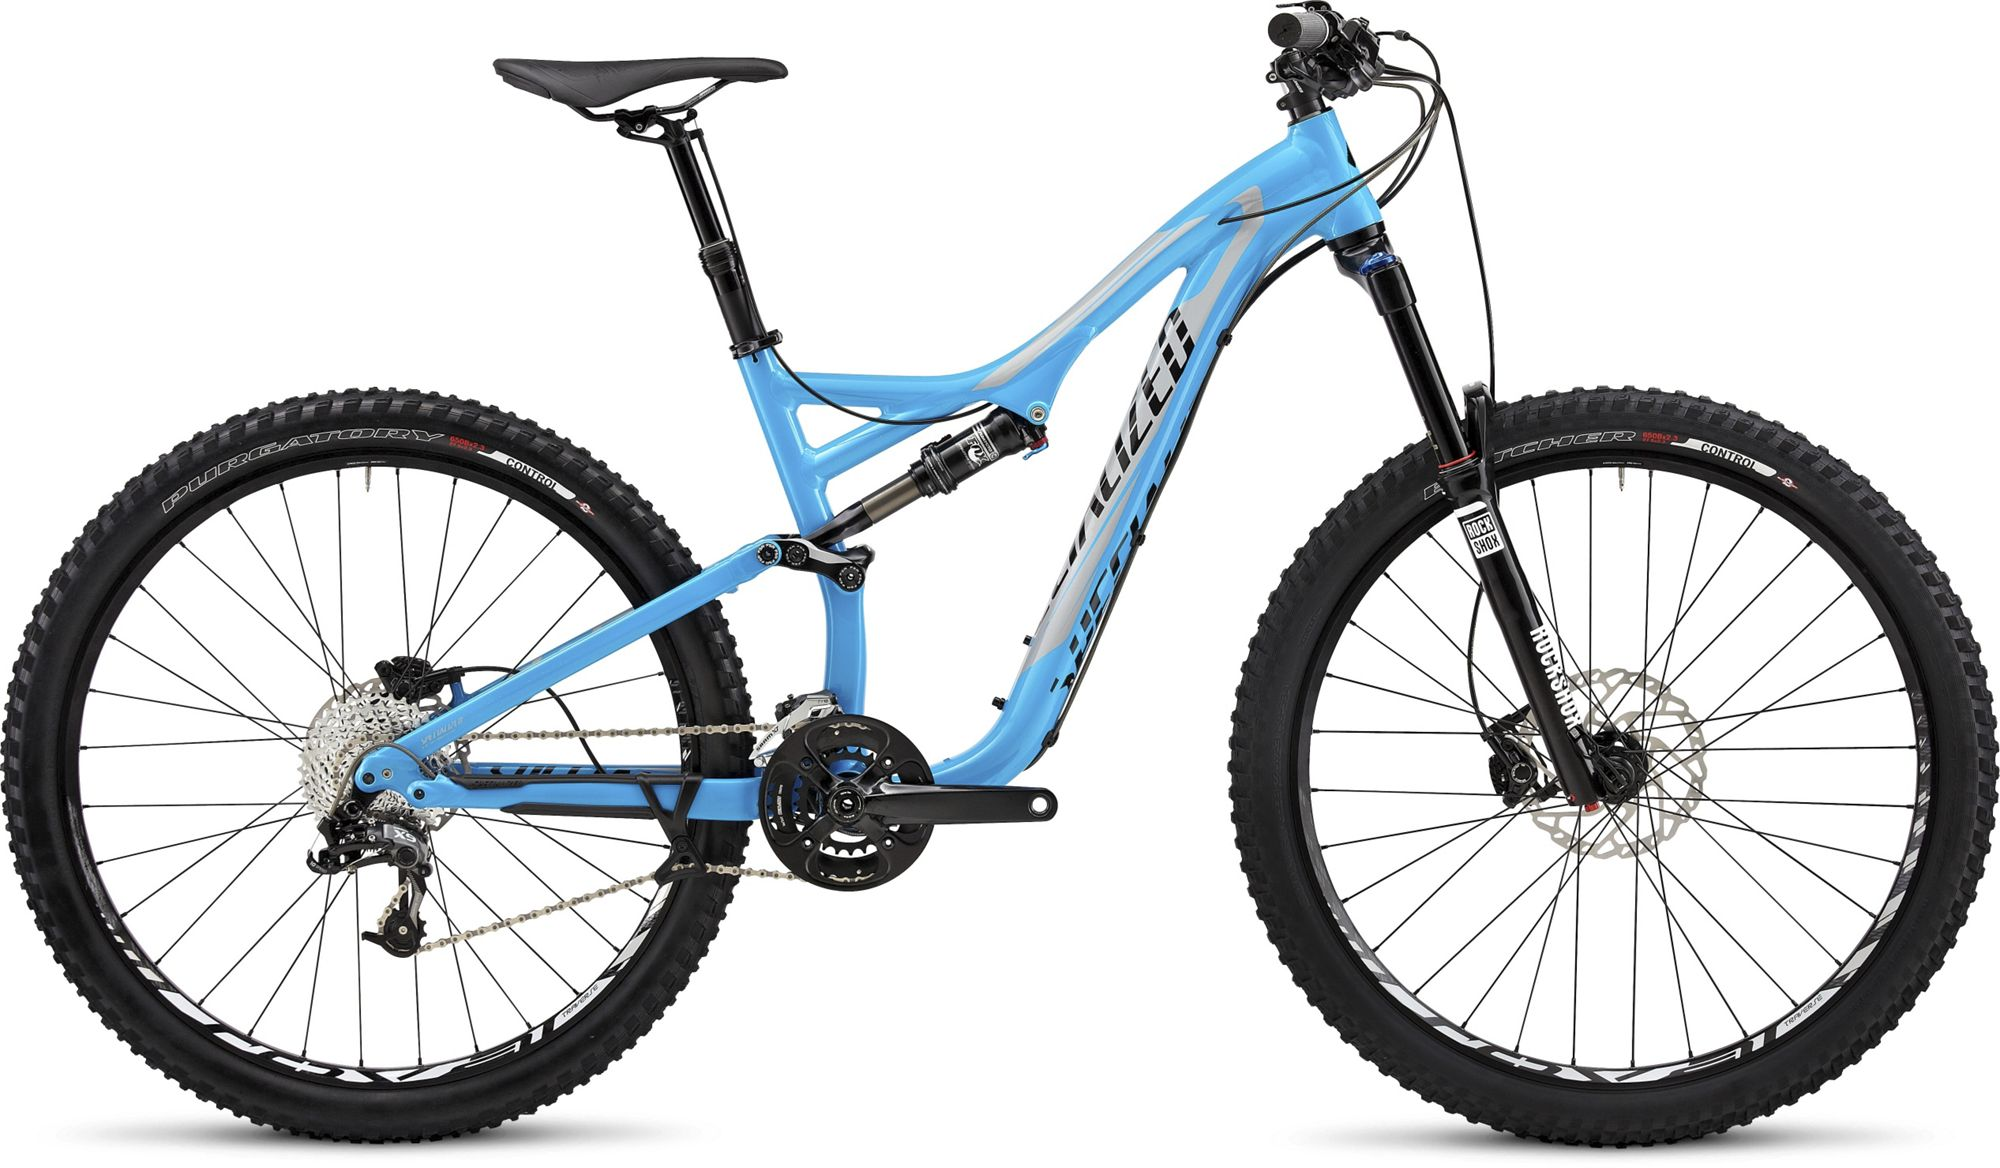 Specialized STUMPJUMPER FSR COMP EVO 650B 2015 review - The